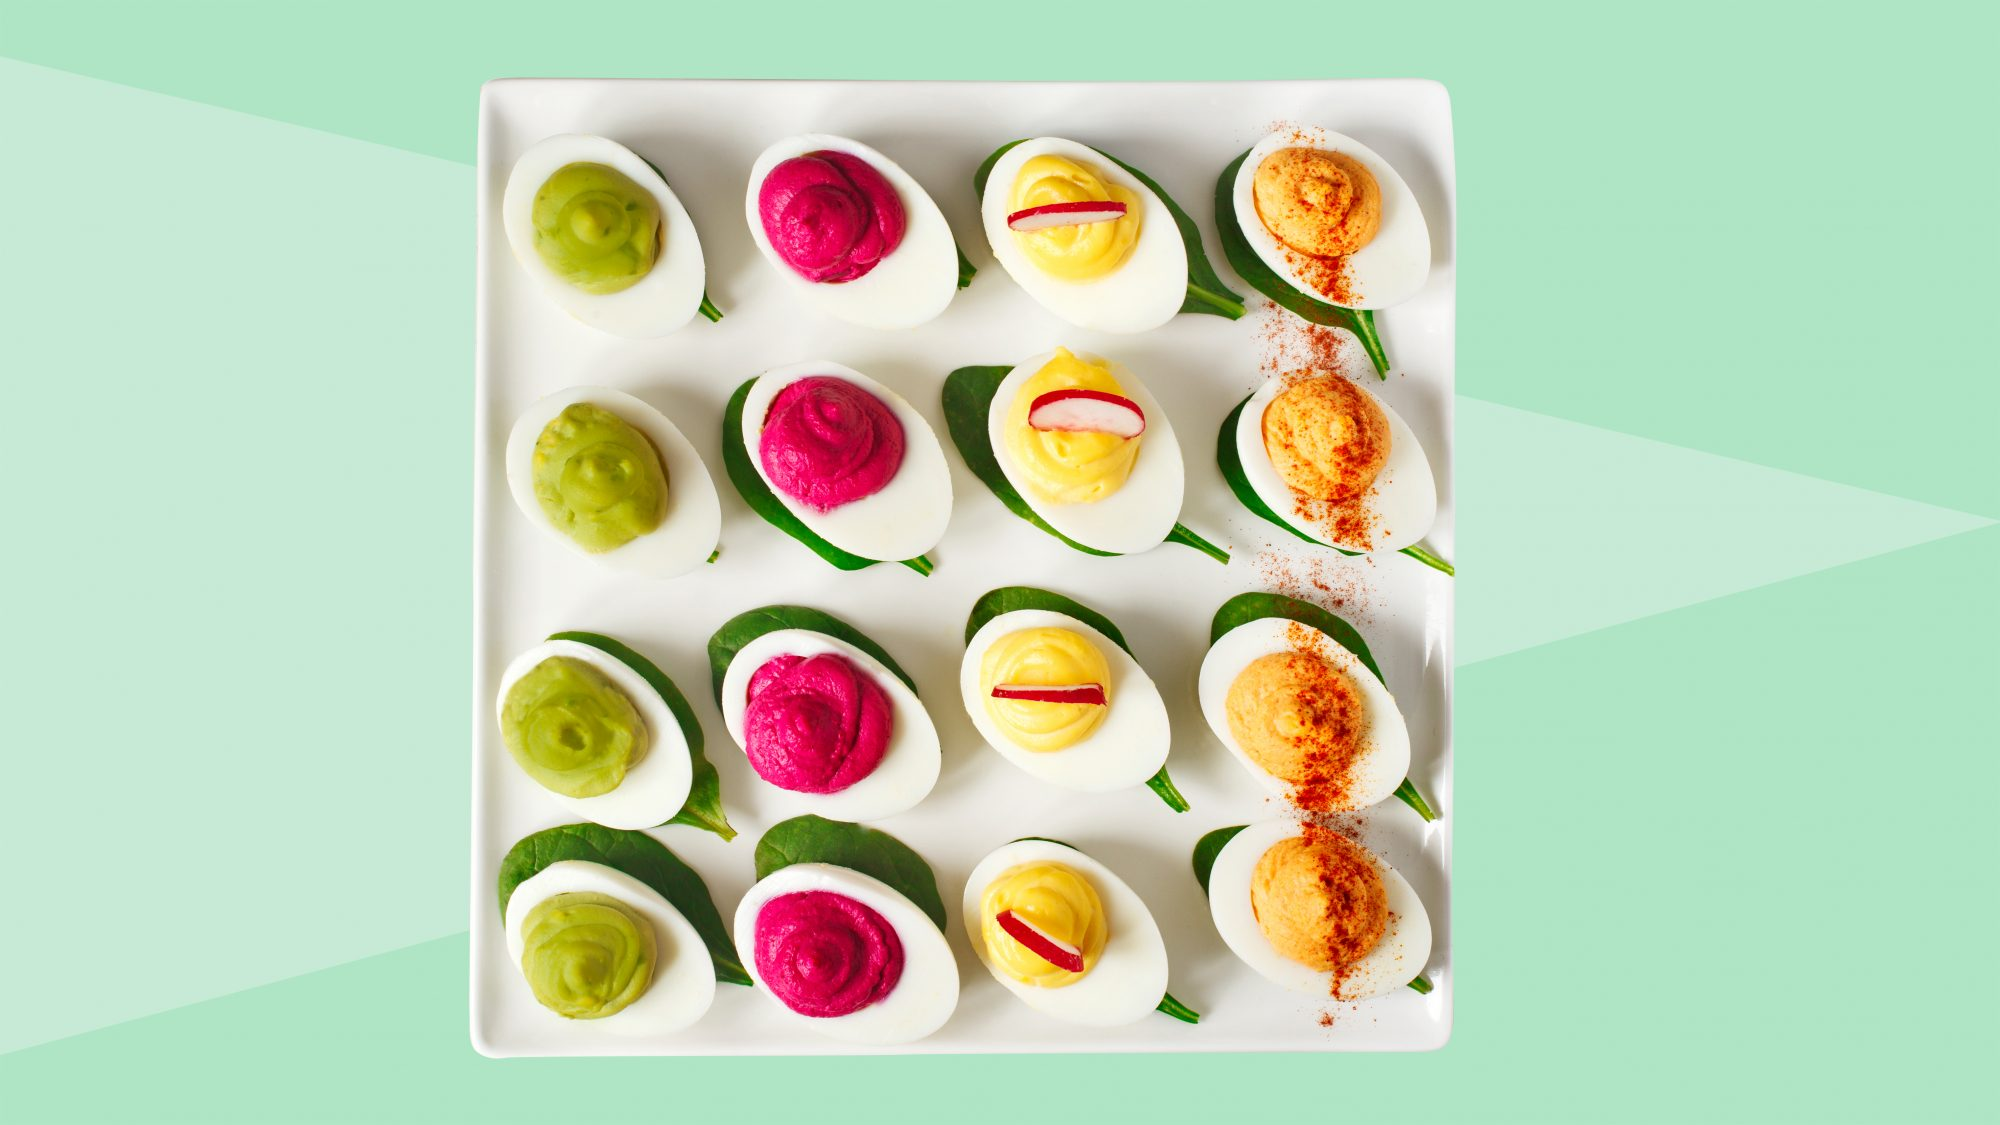 4 types of deviled eggs on a platter